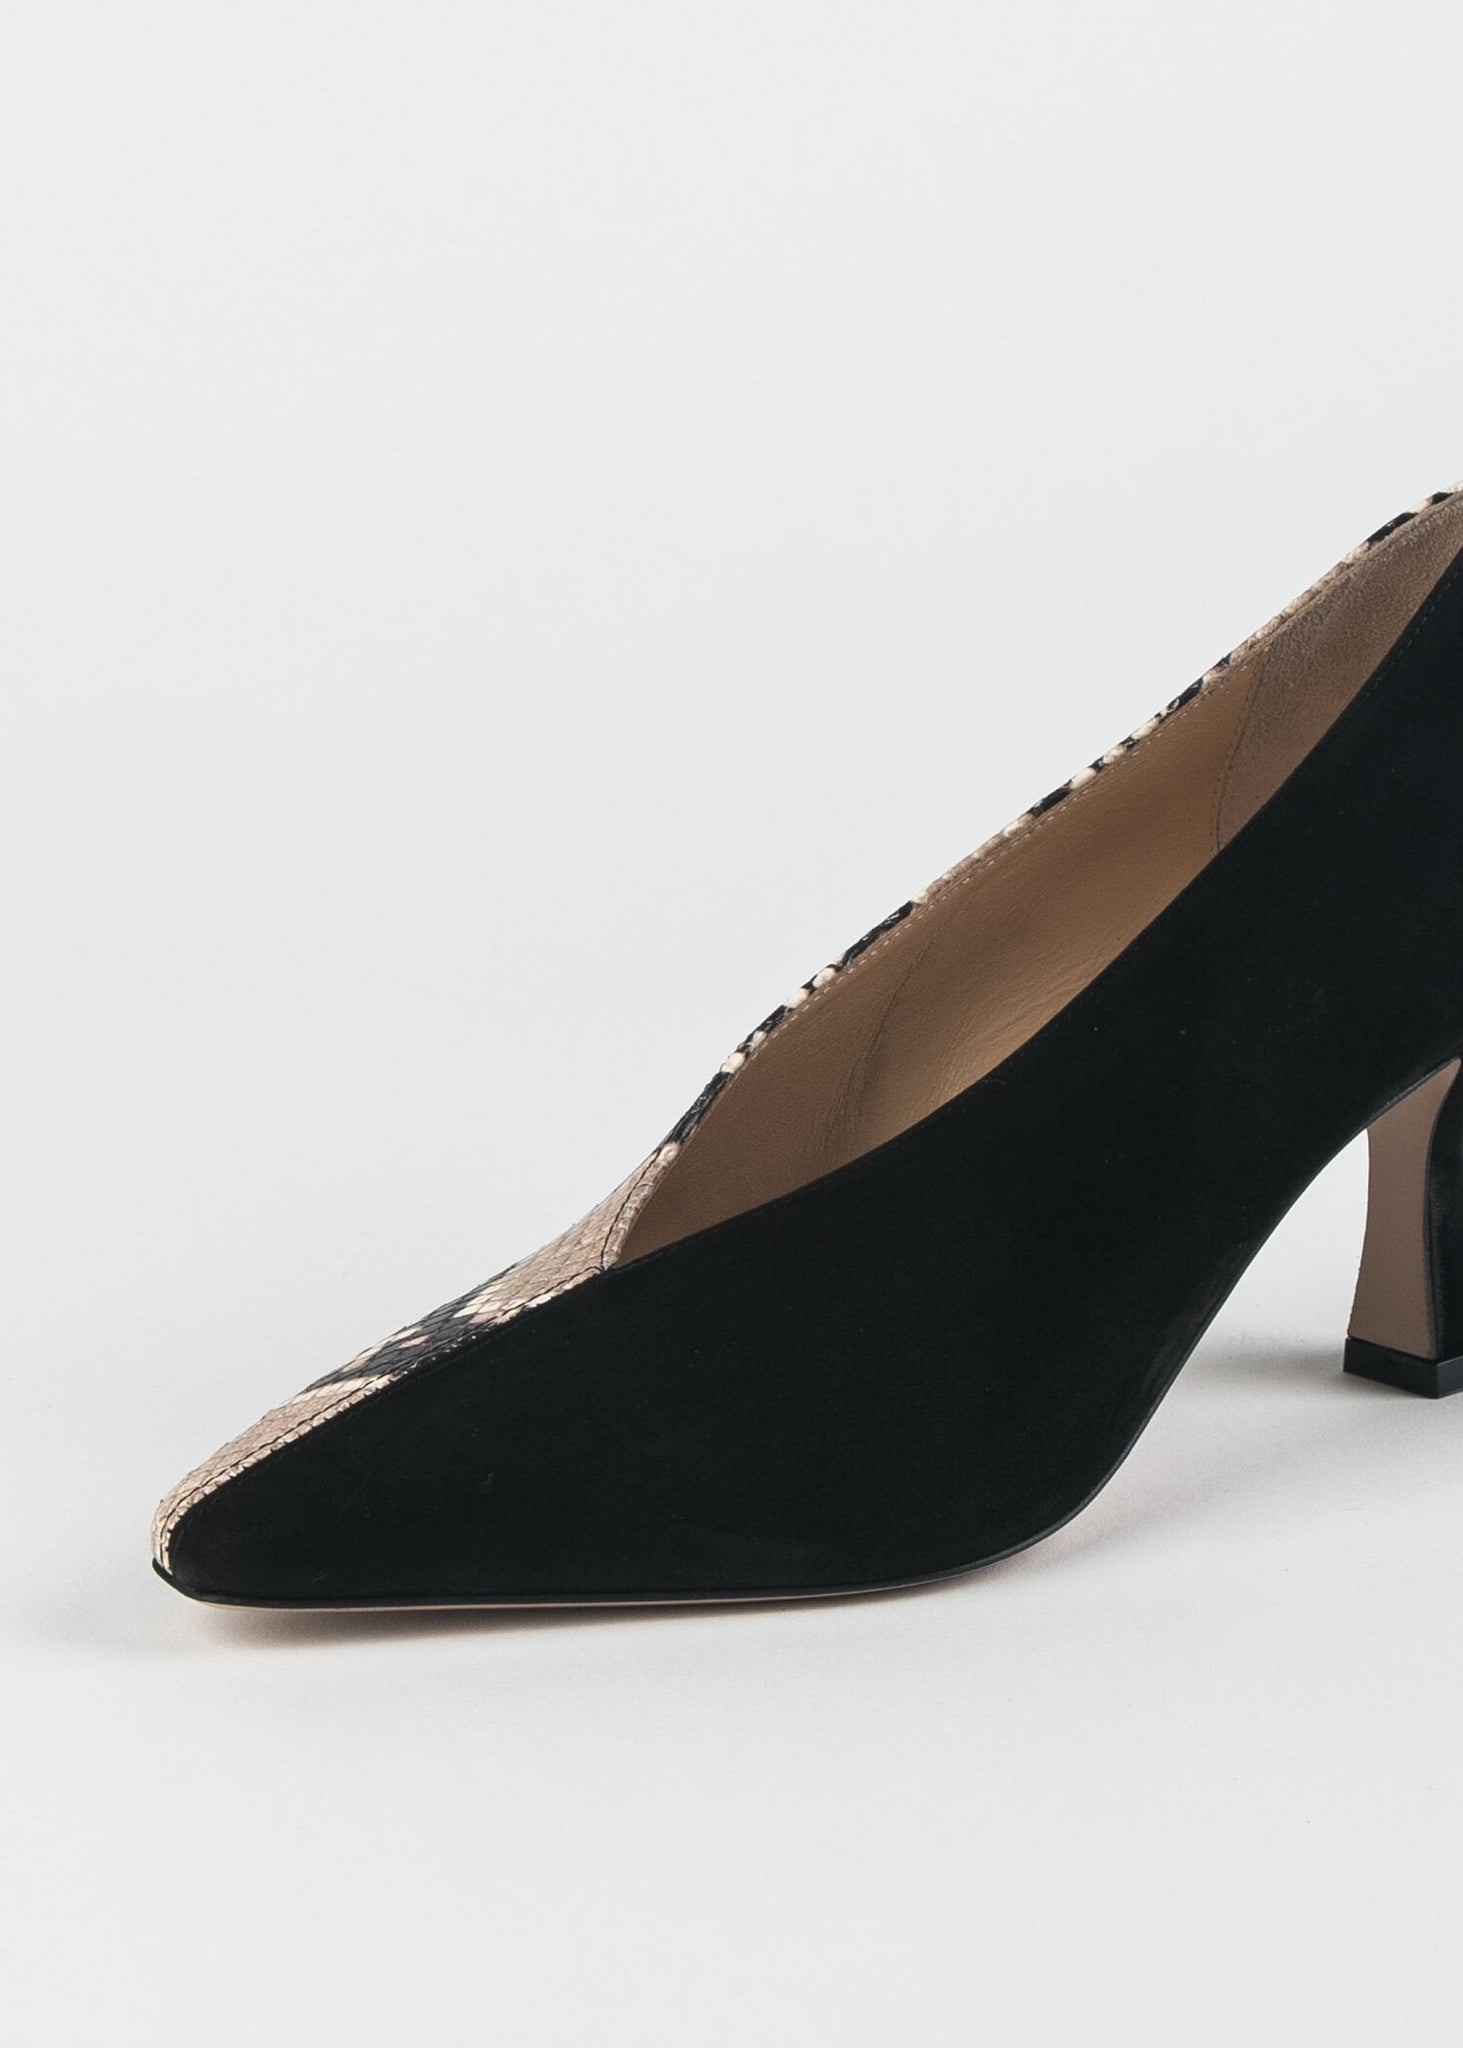 CAGNO TWO TONE POINTED TOE PUMP